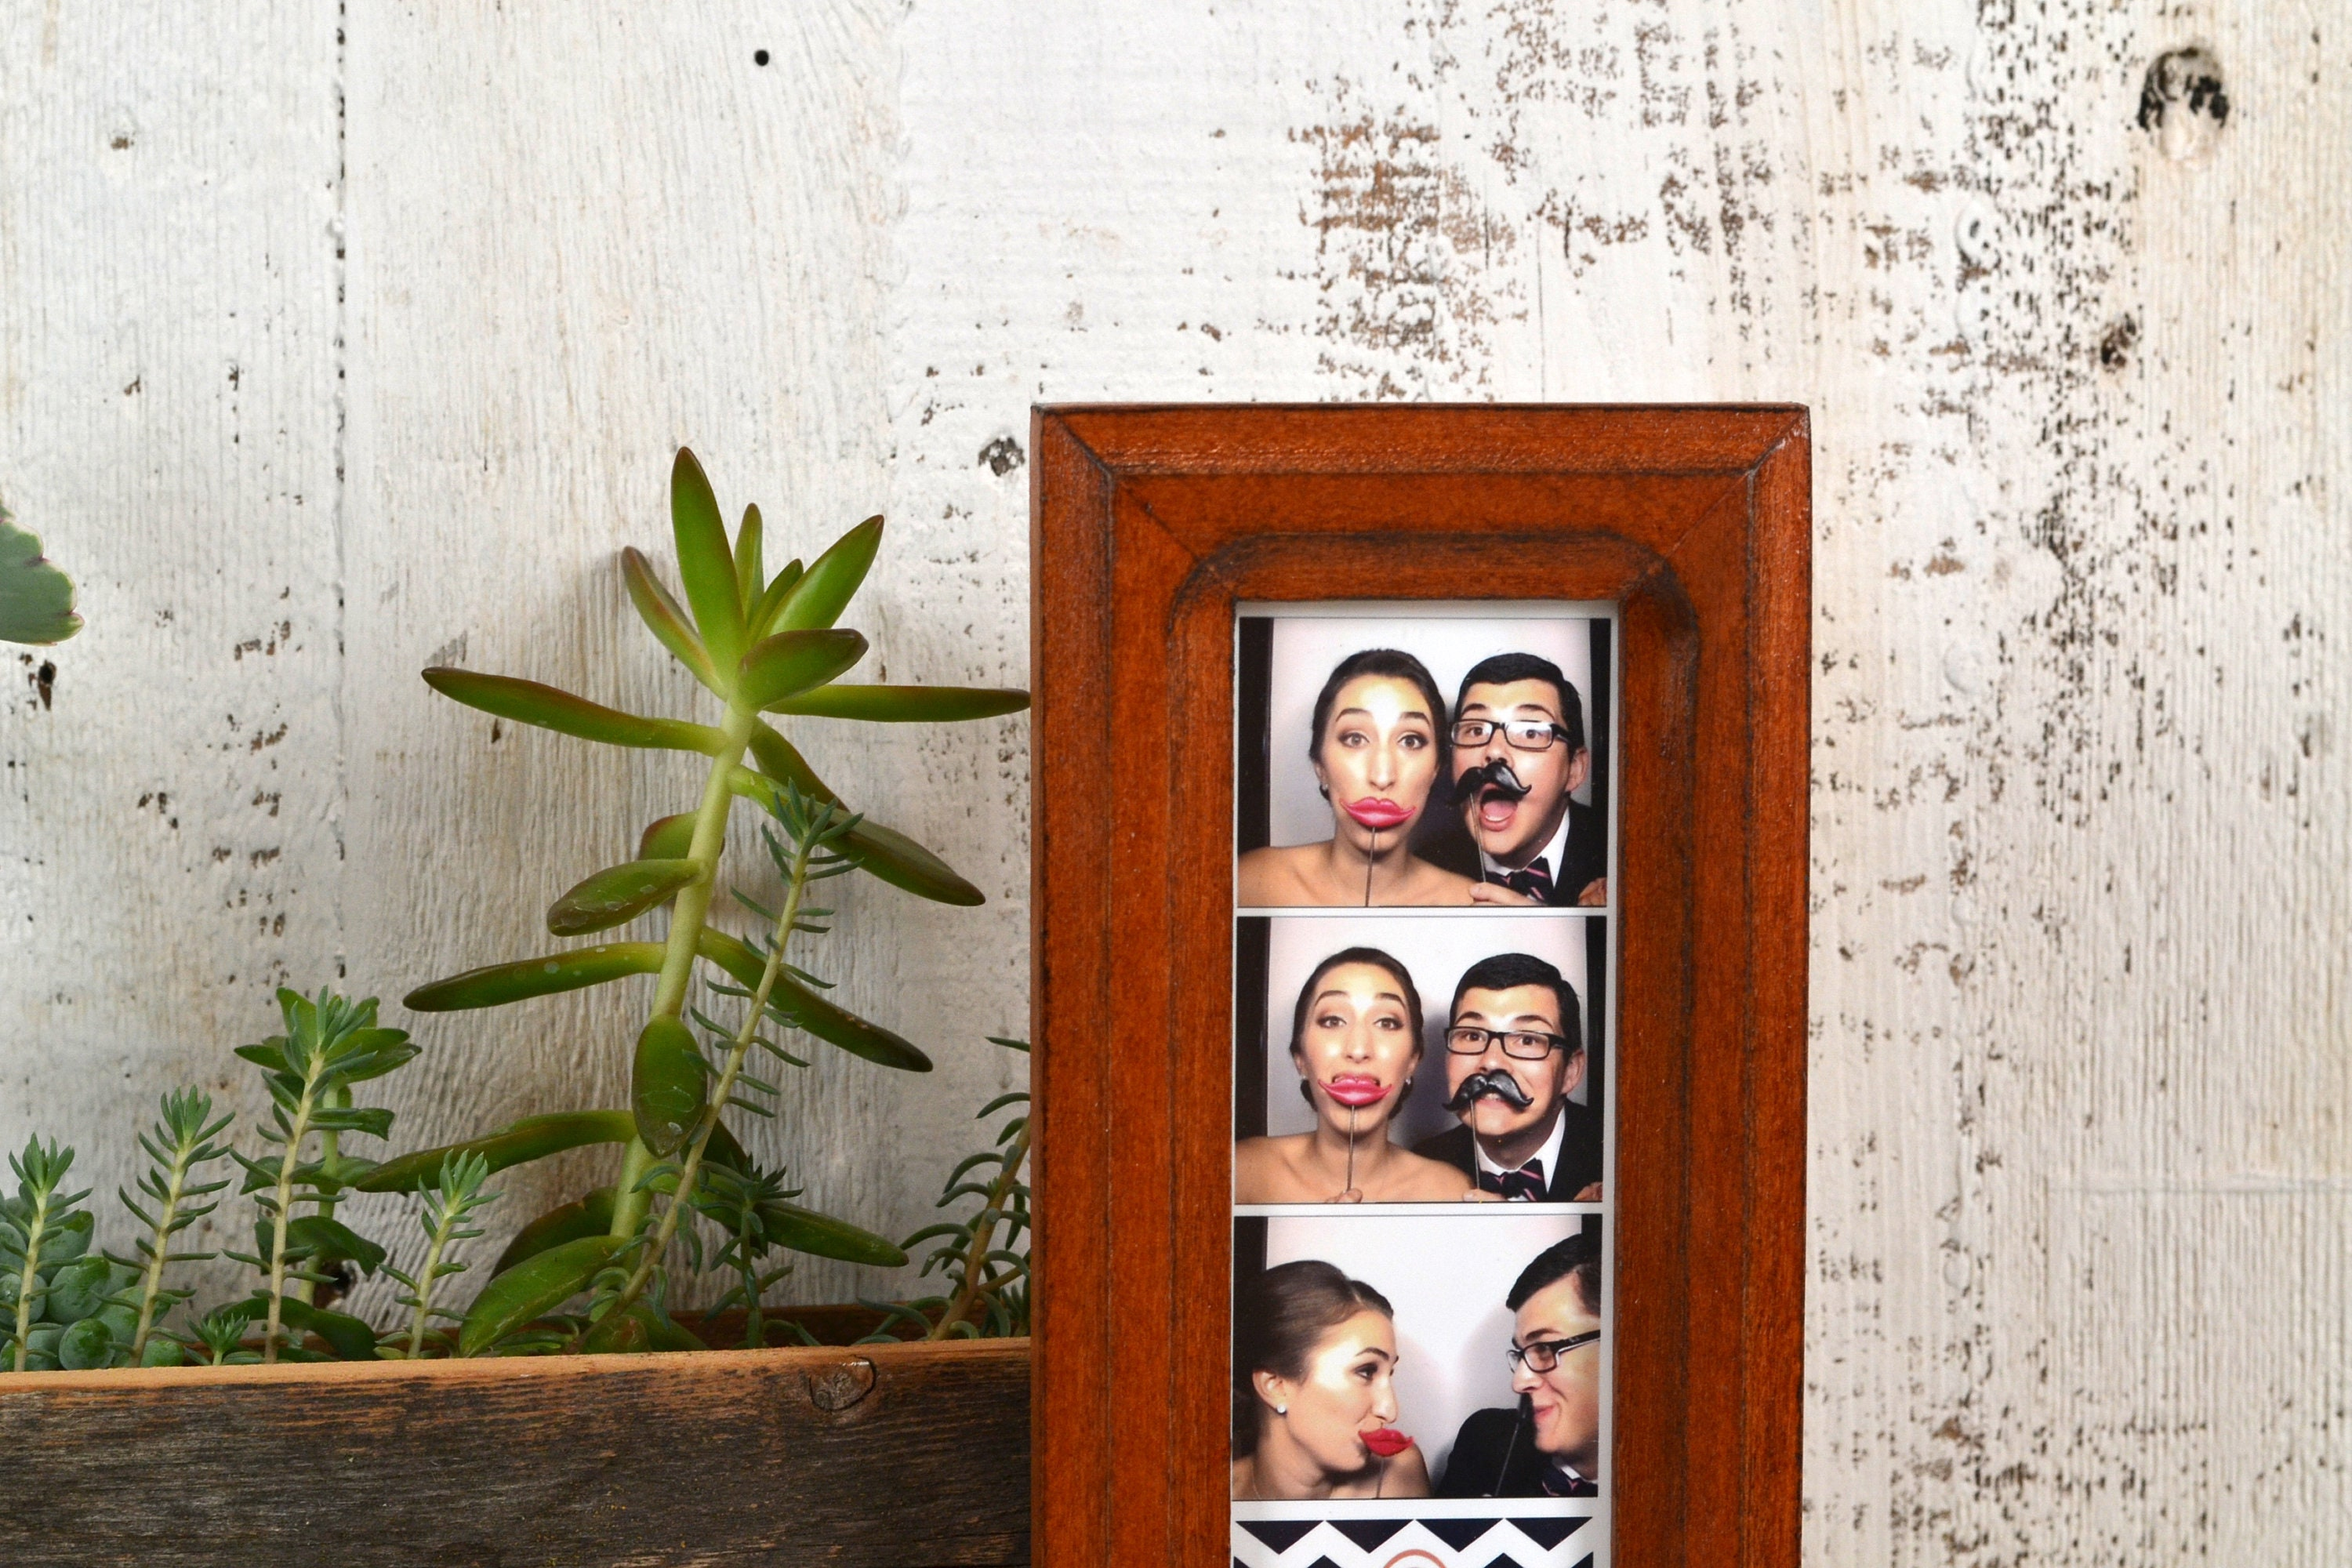 Photo Booth Frame For 2 X 6 Picture Strip In Double Cove Style With